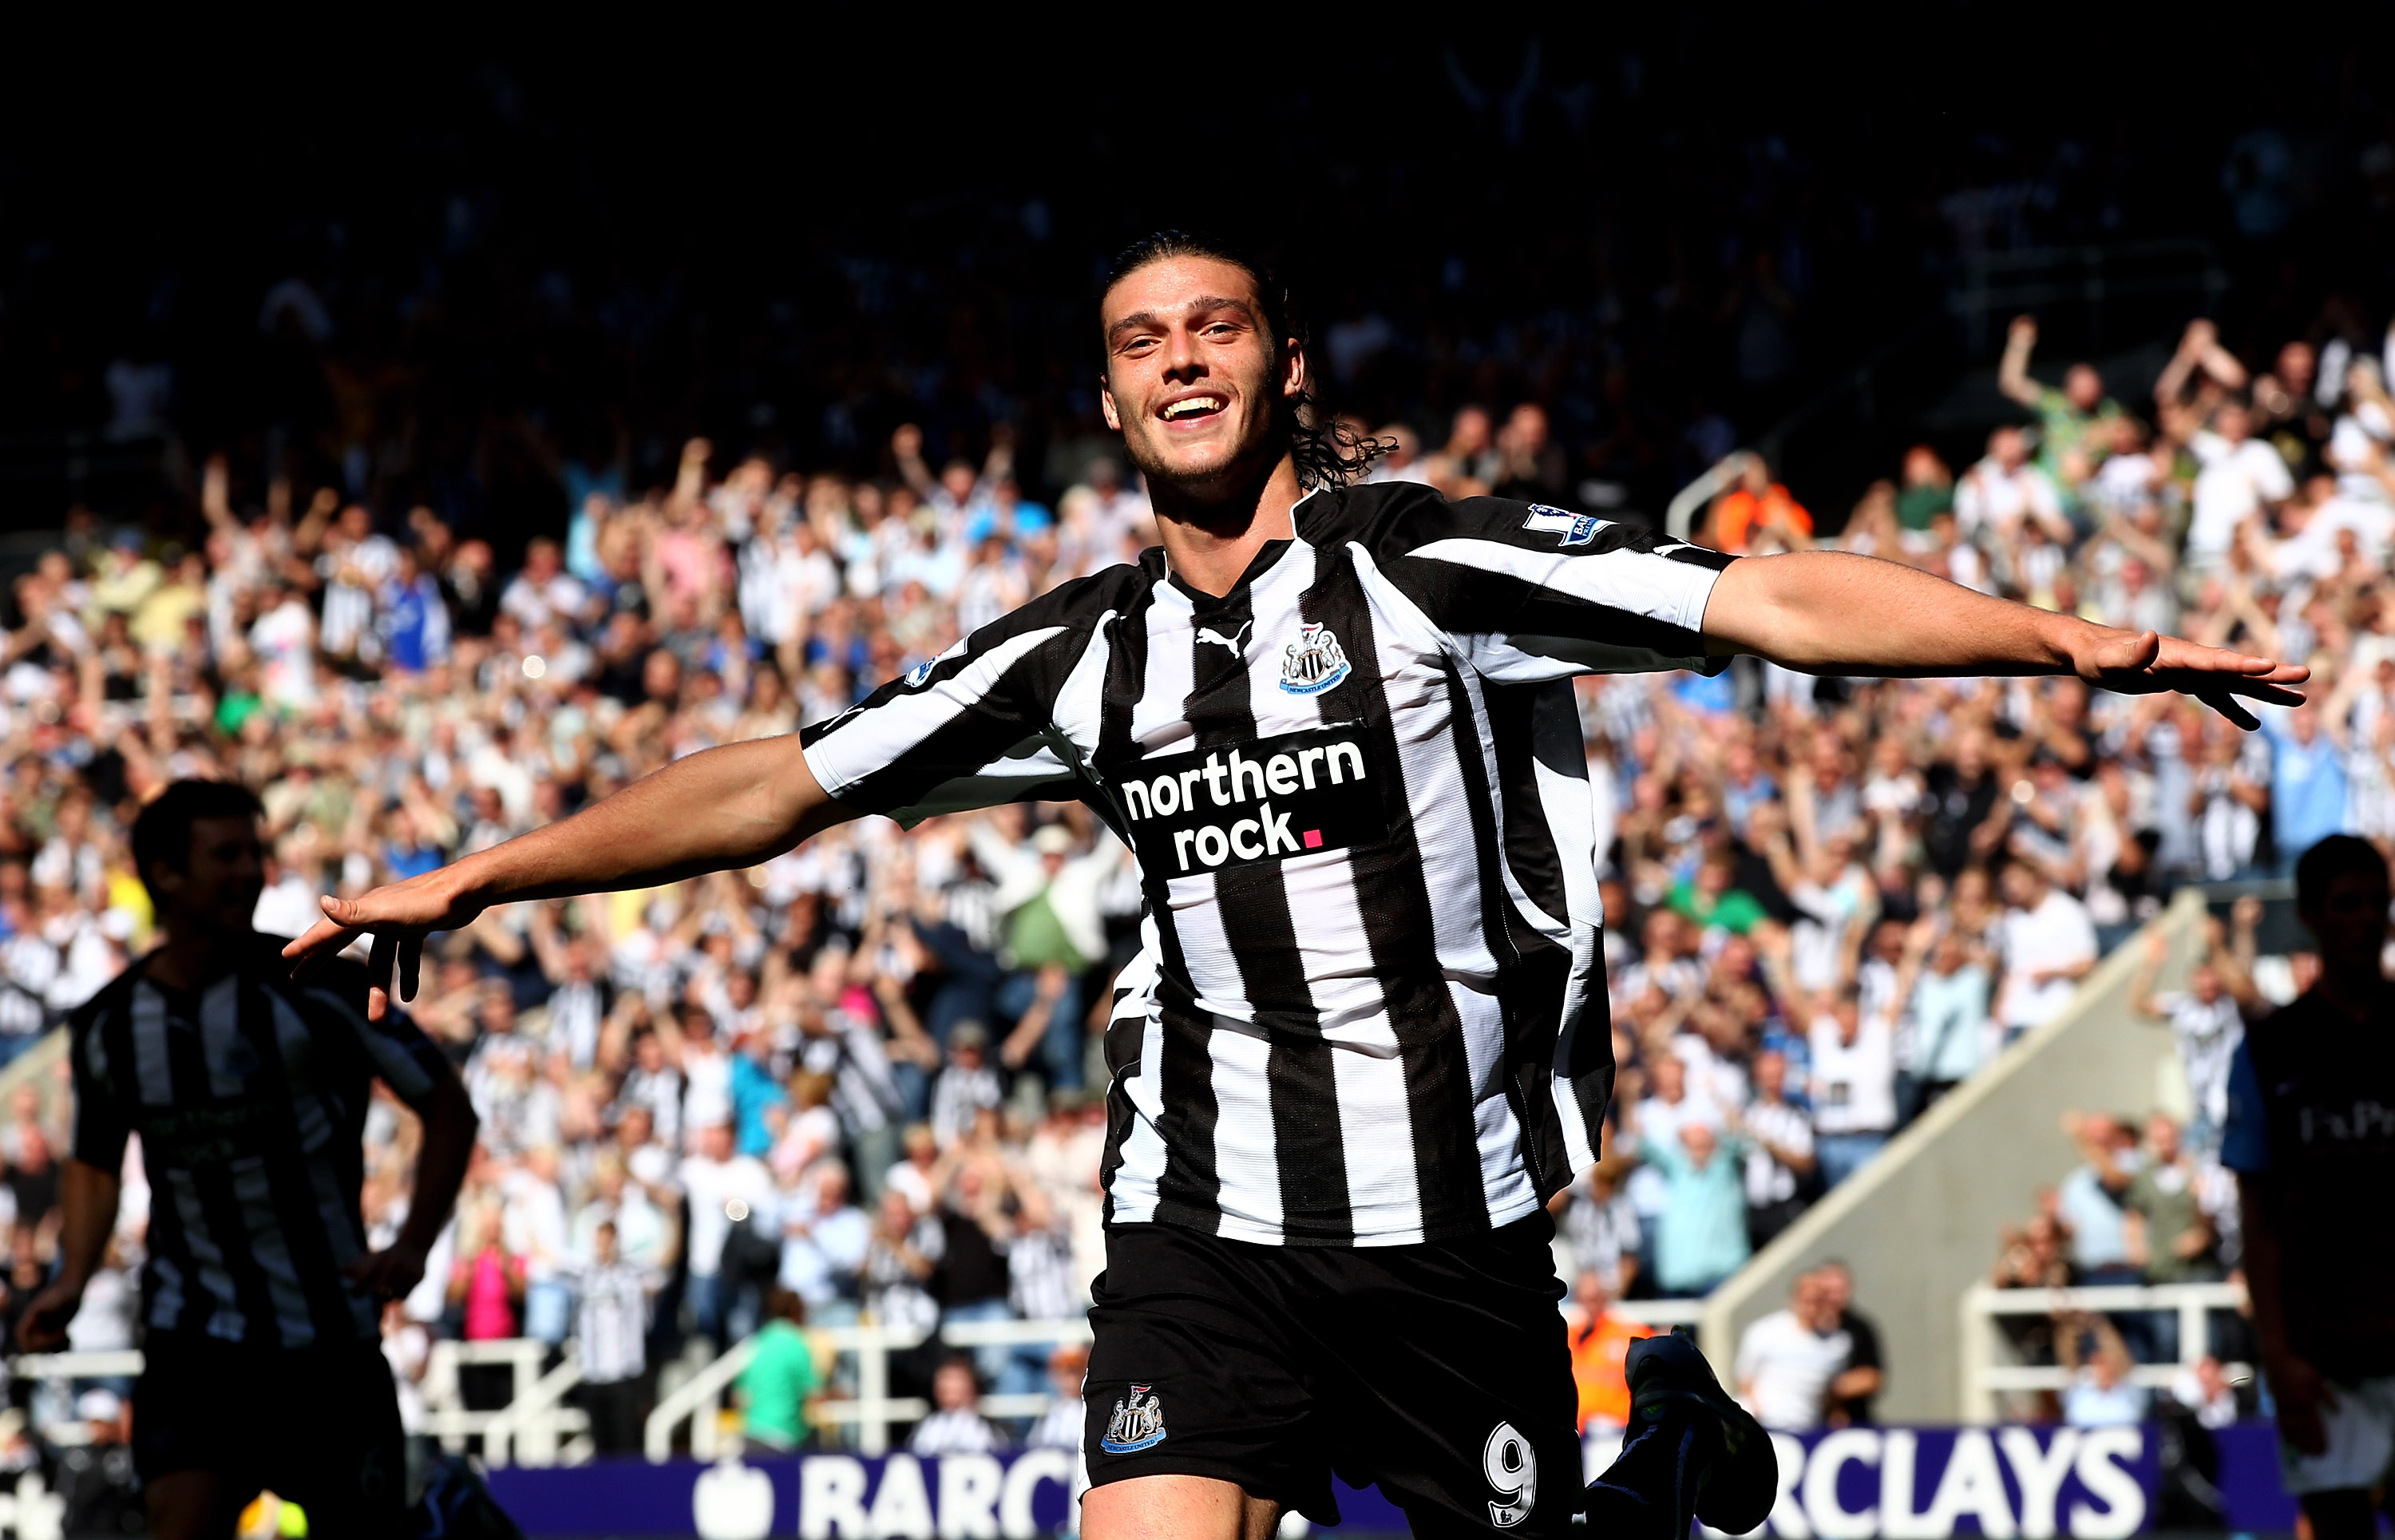 NEWCASTLE UPON TYNE, ENGLAND - AUGUST 22: Andy Carroll of Newcastle United celebrates scoring his teams fourth goal during the Barclays Premier League match between Newcastle United and Aston Villa at St James' Park on August 22, 2010 in Newcastle upon Ty